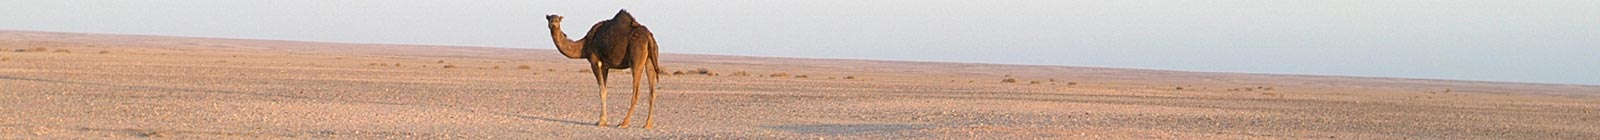 Camel in evening Western Sahara Banner